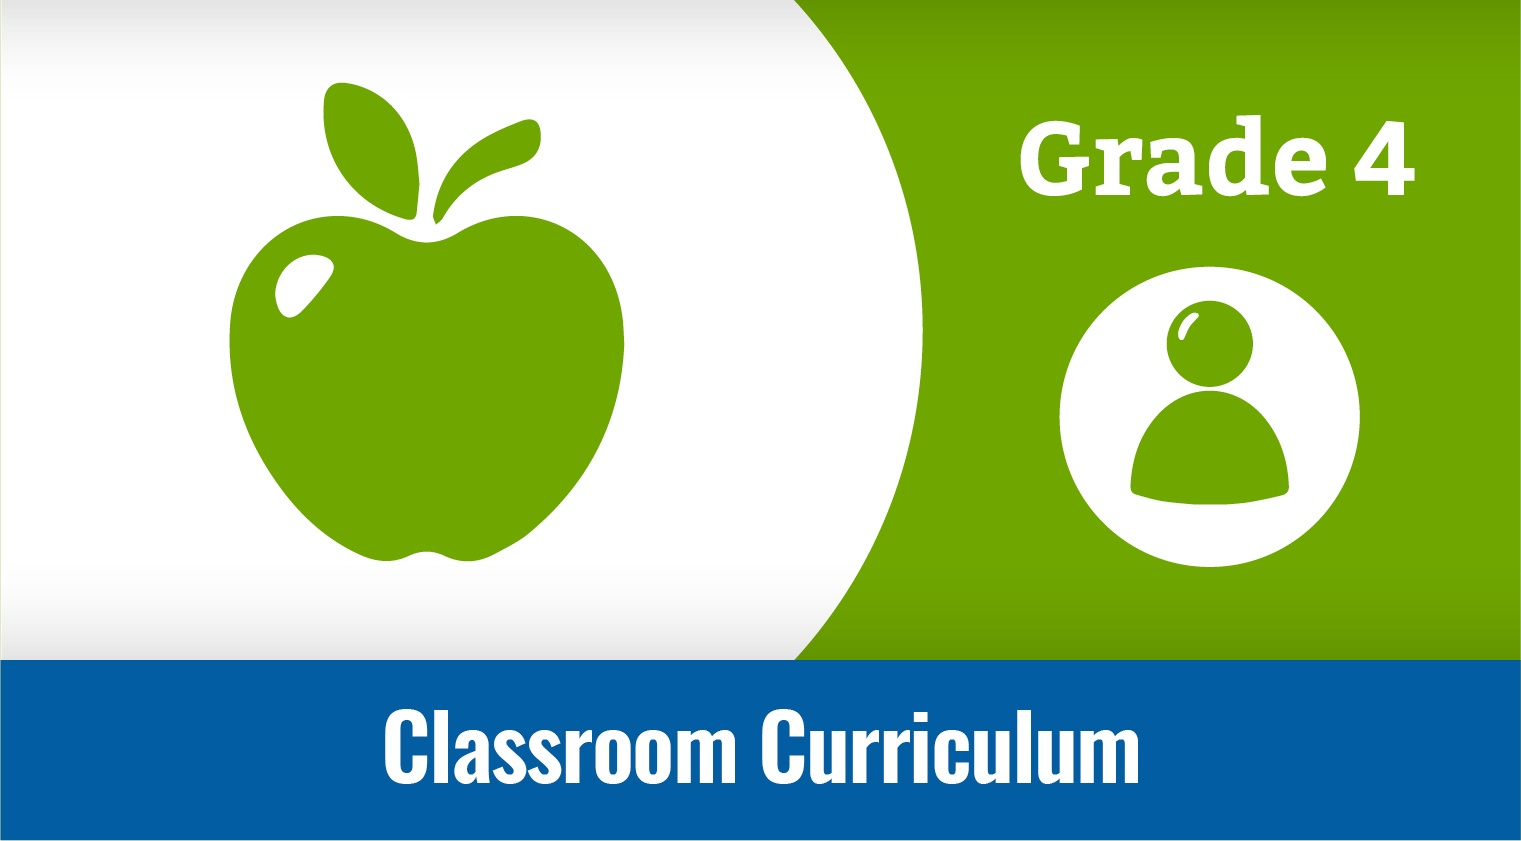 Grade 4 Classroom Curriculum - Taking Off